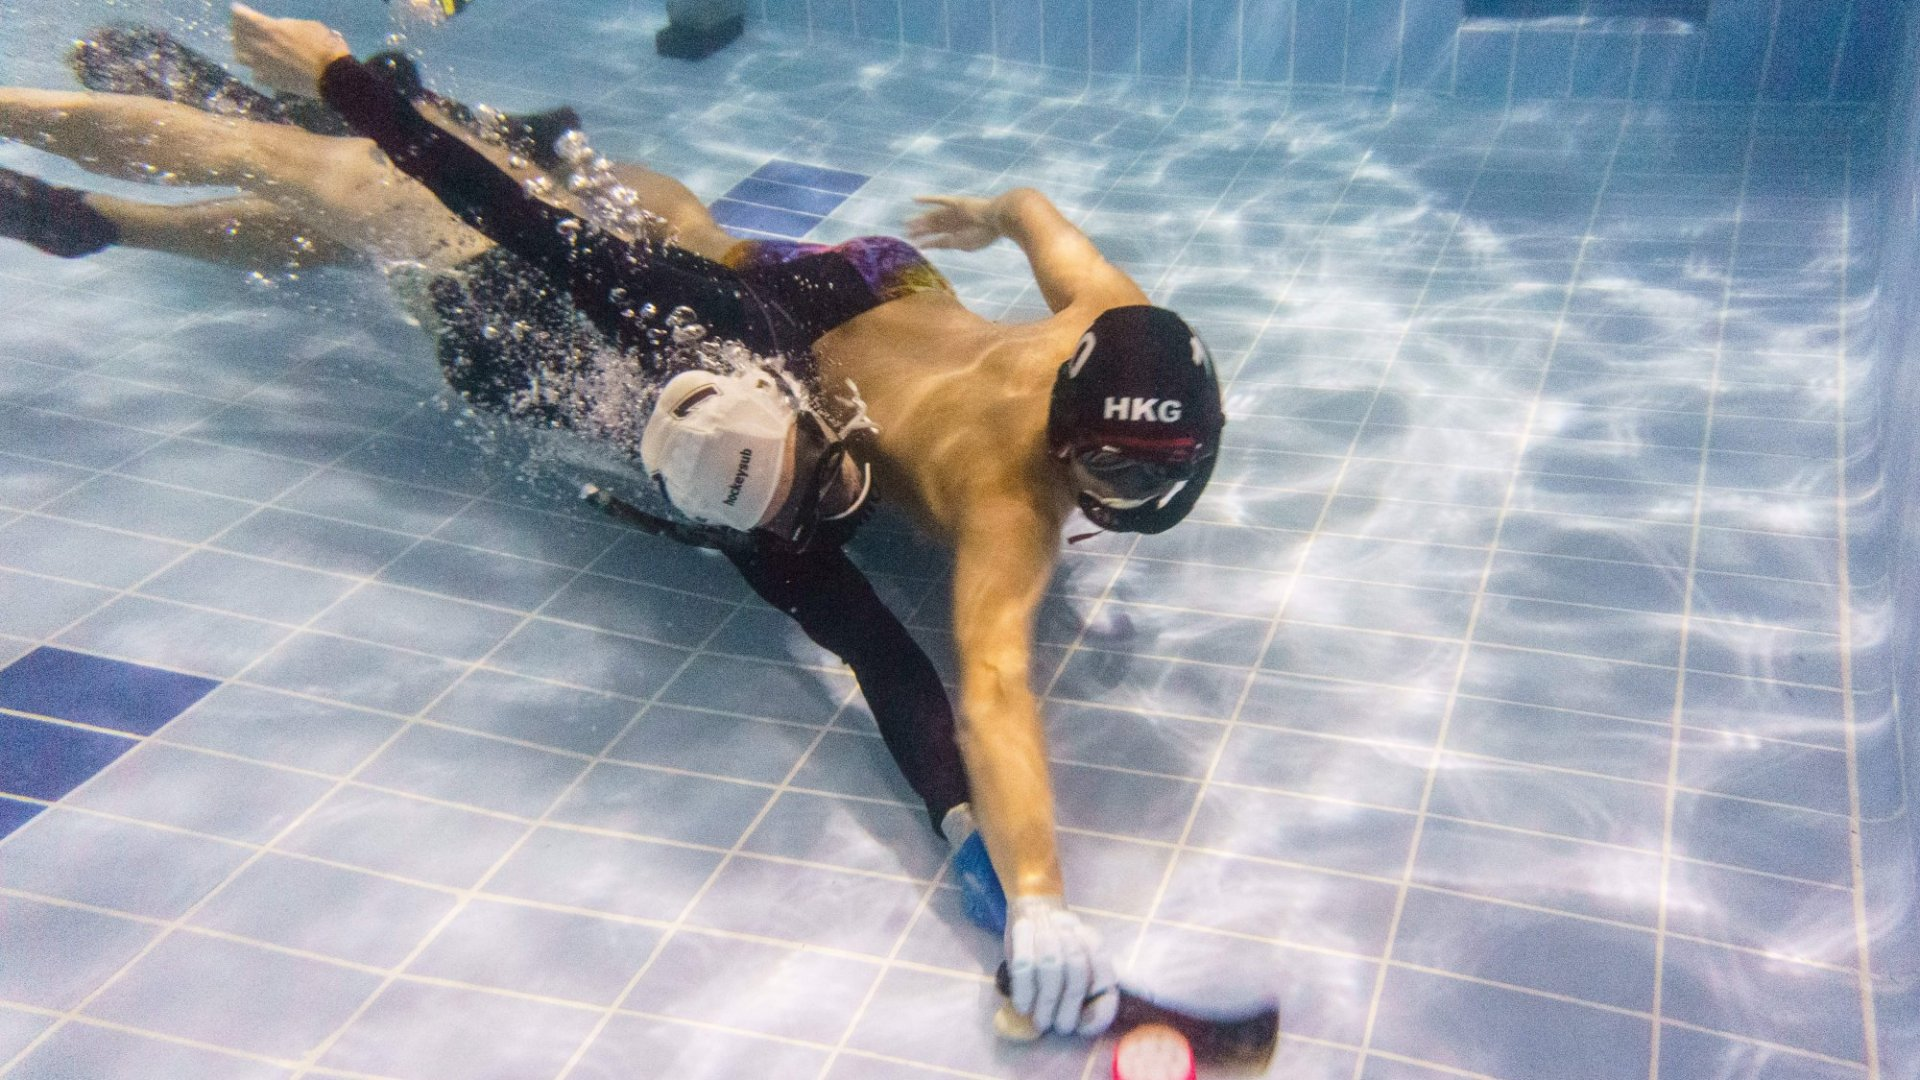 > Underwater Hockey Players